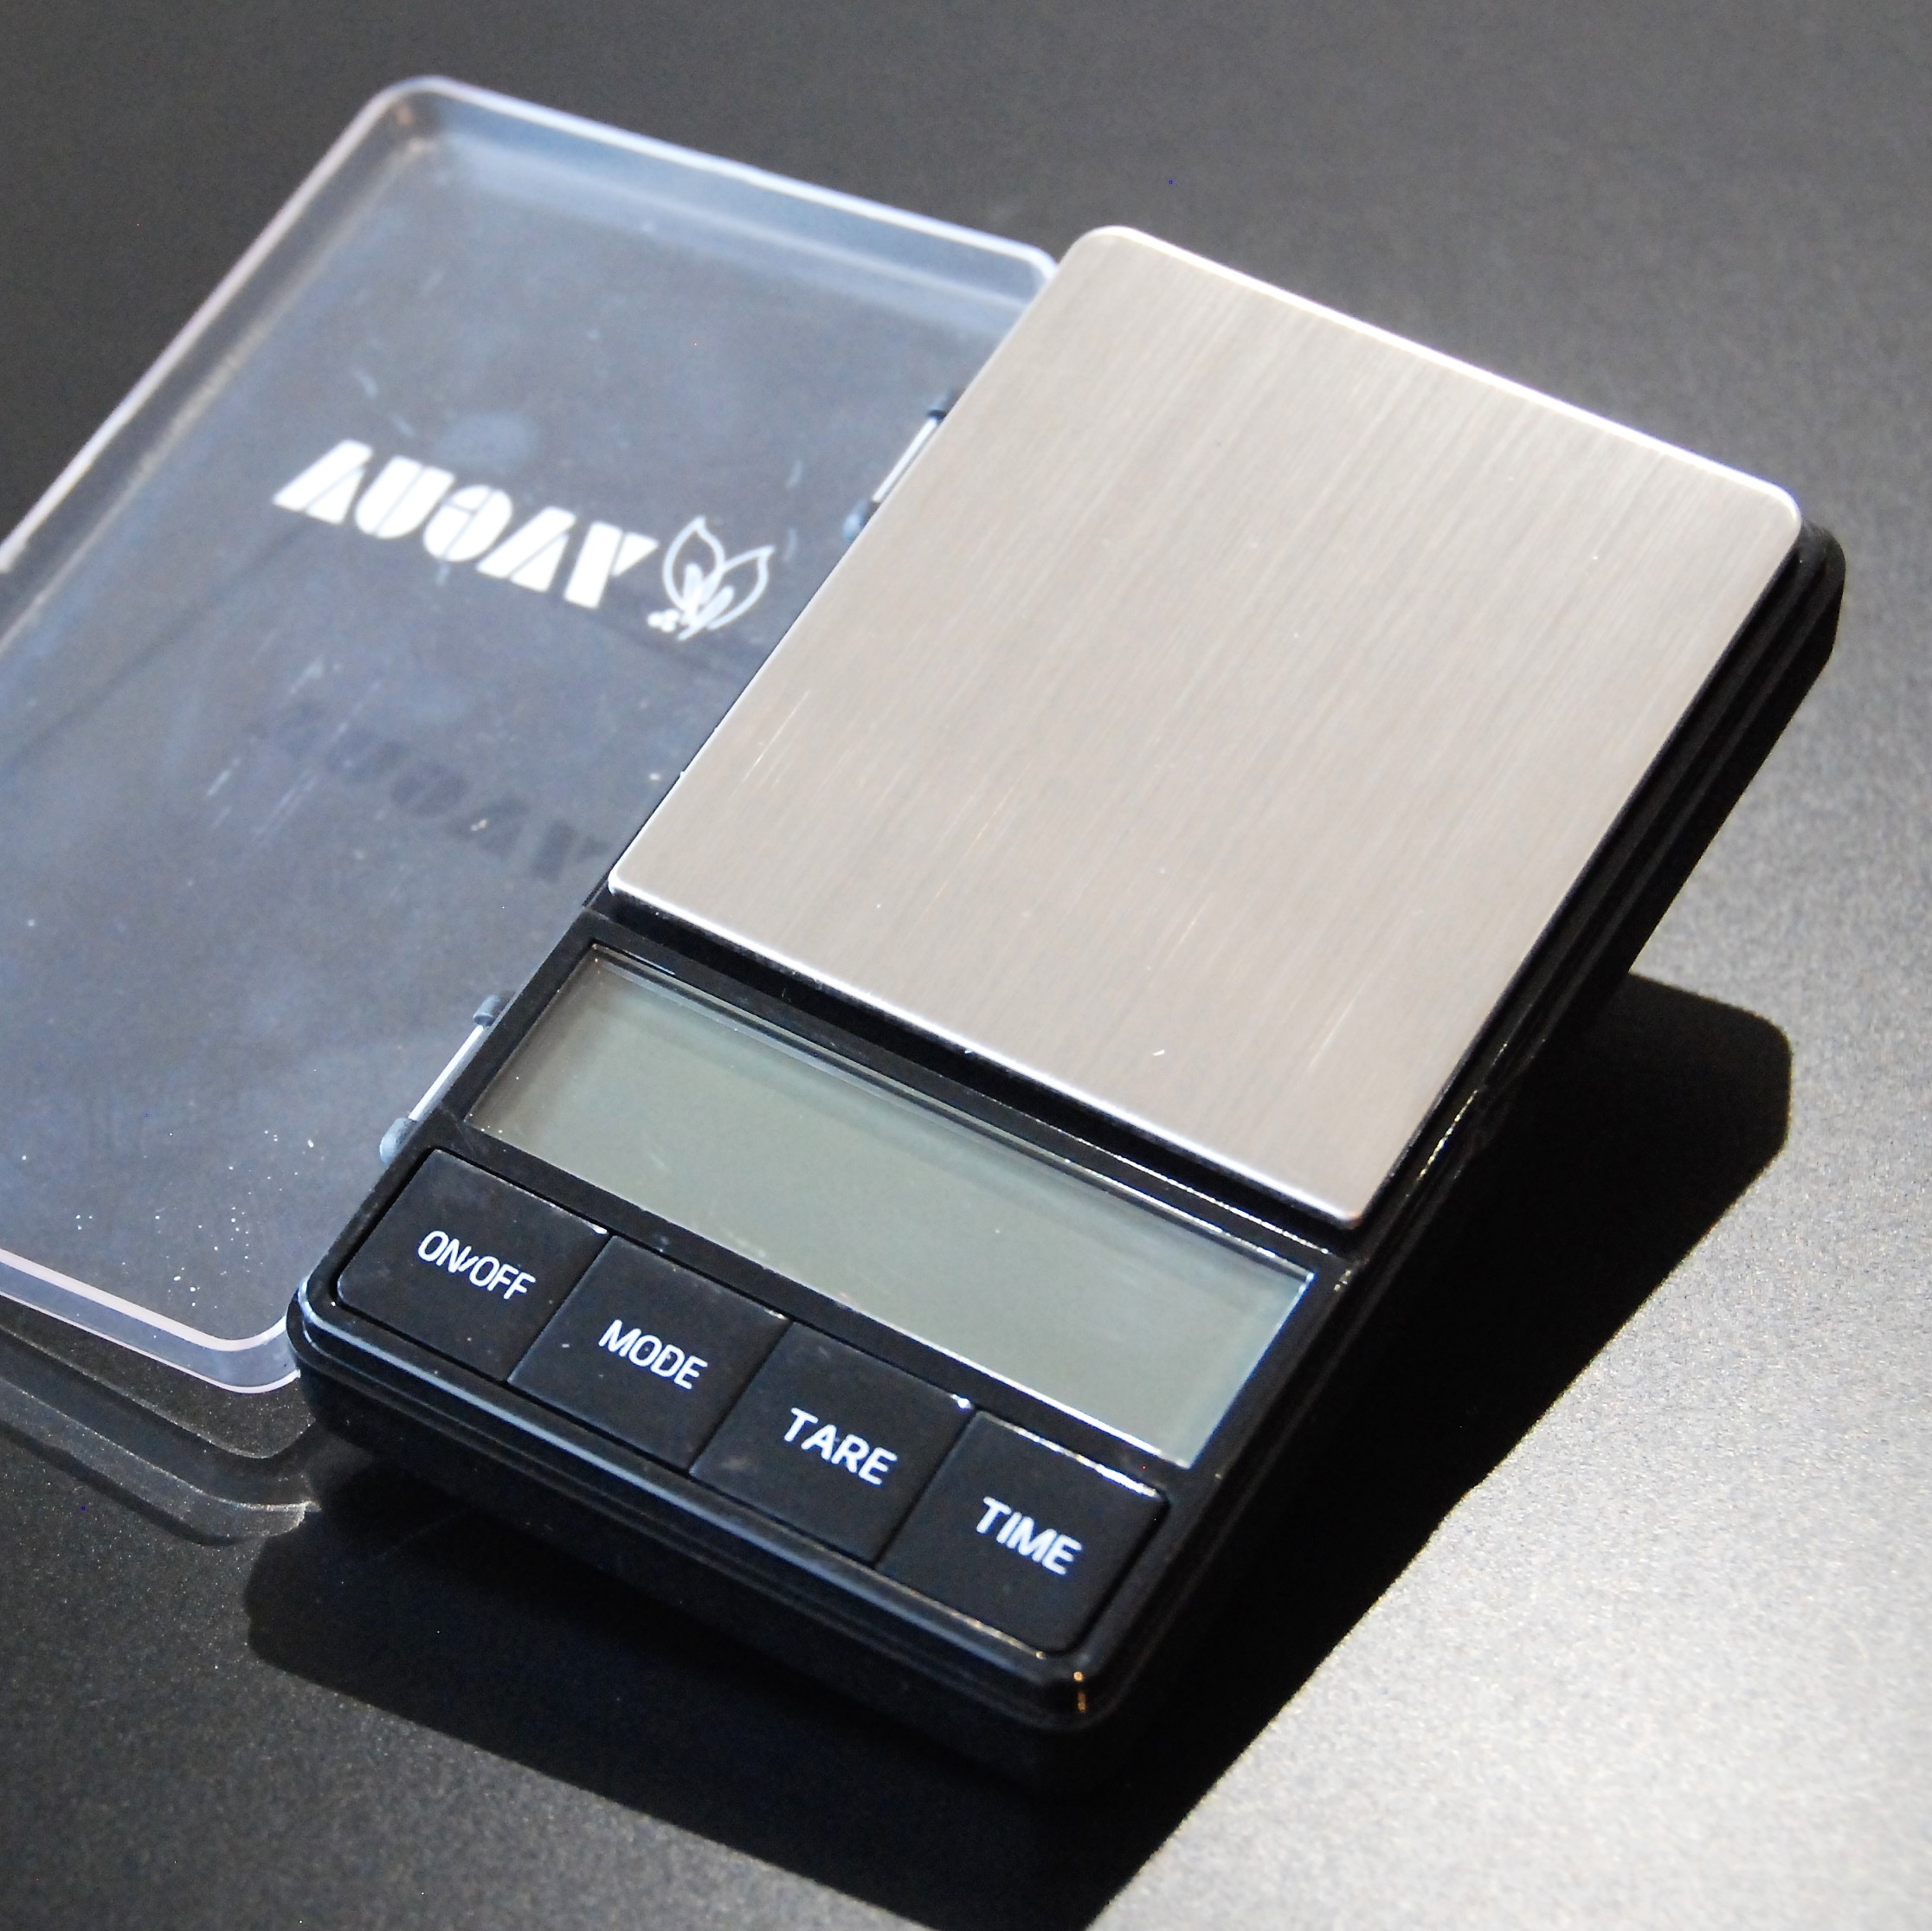 YAGUA DRY SCALE WITH TIMER FOR COFFEE AND TEA.